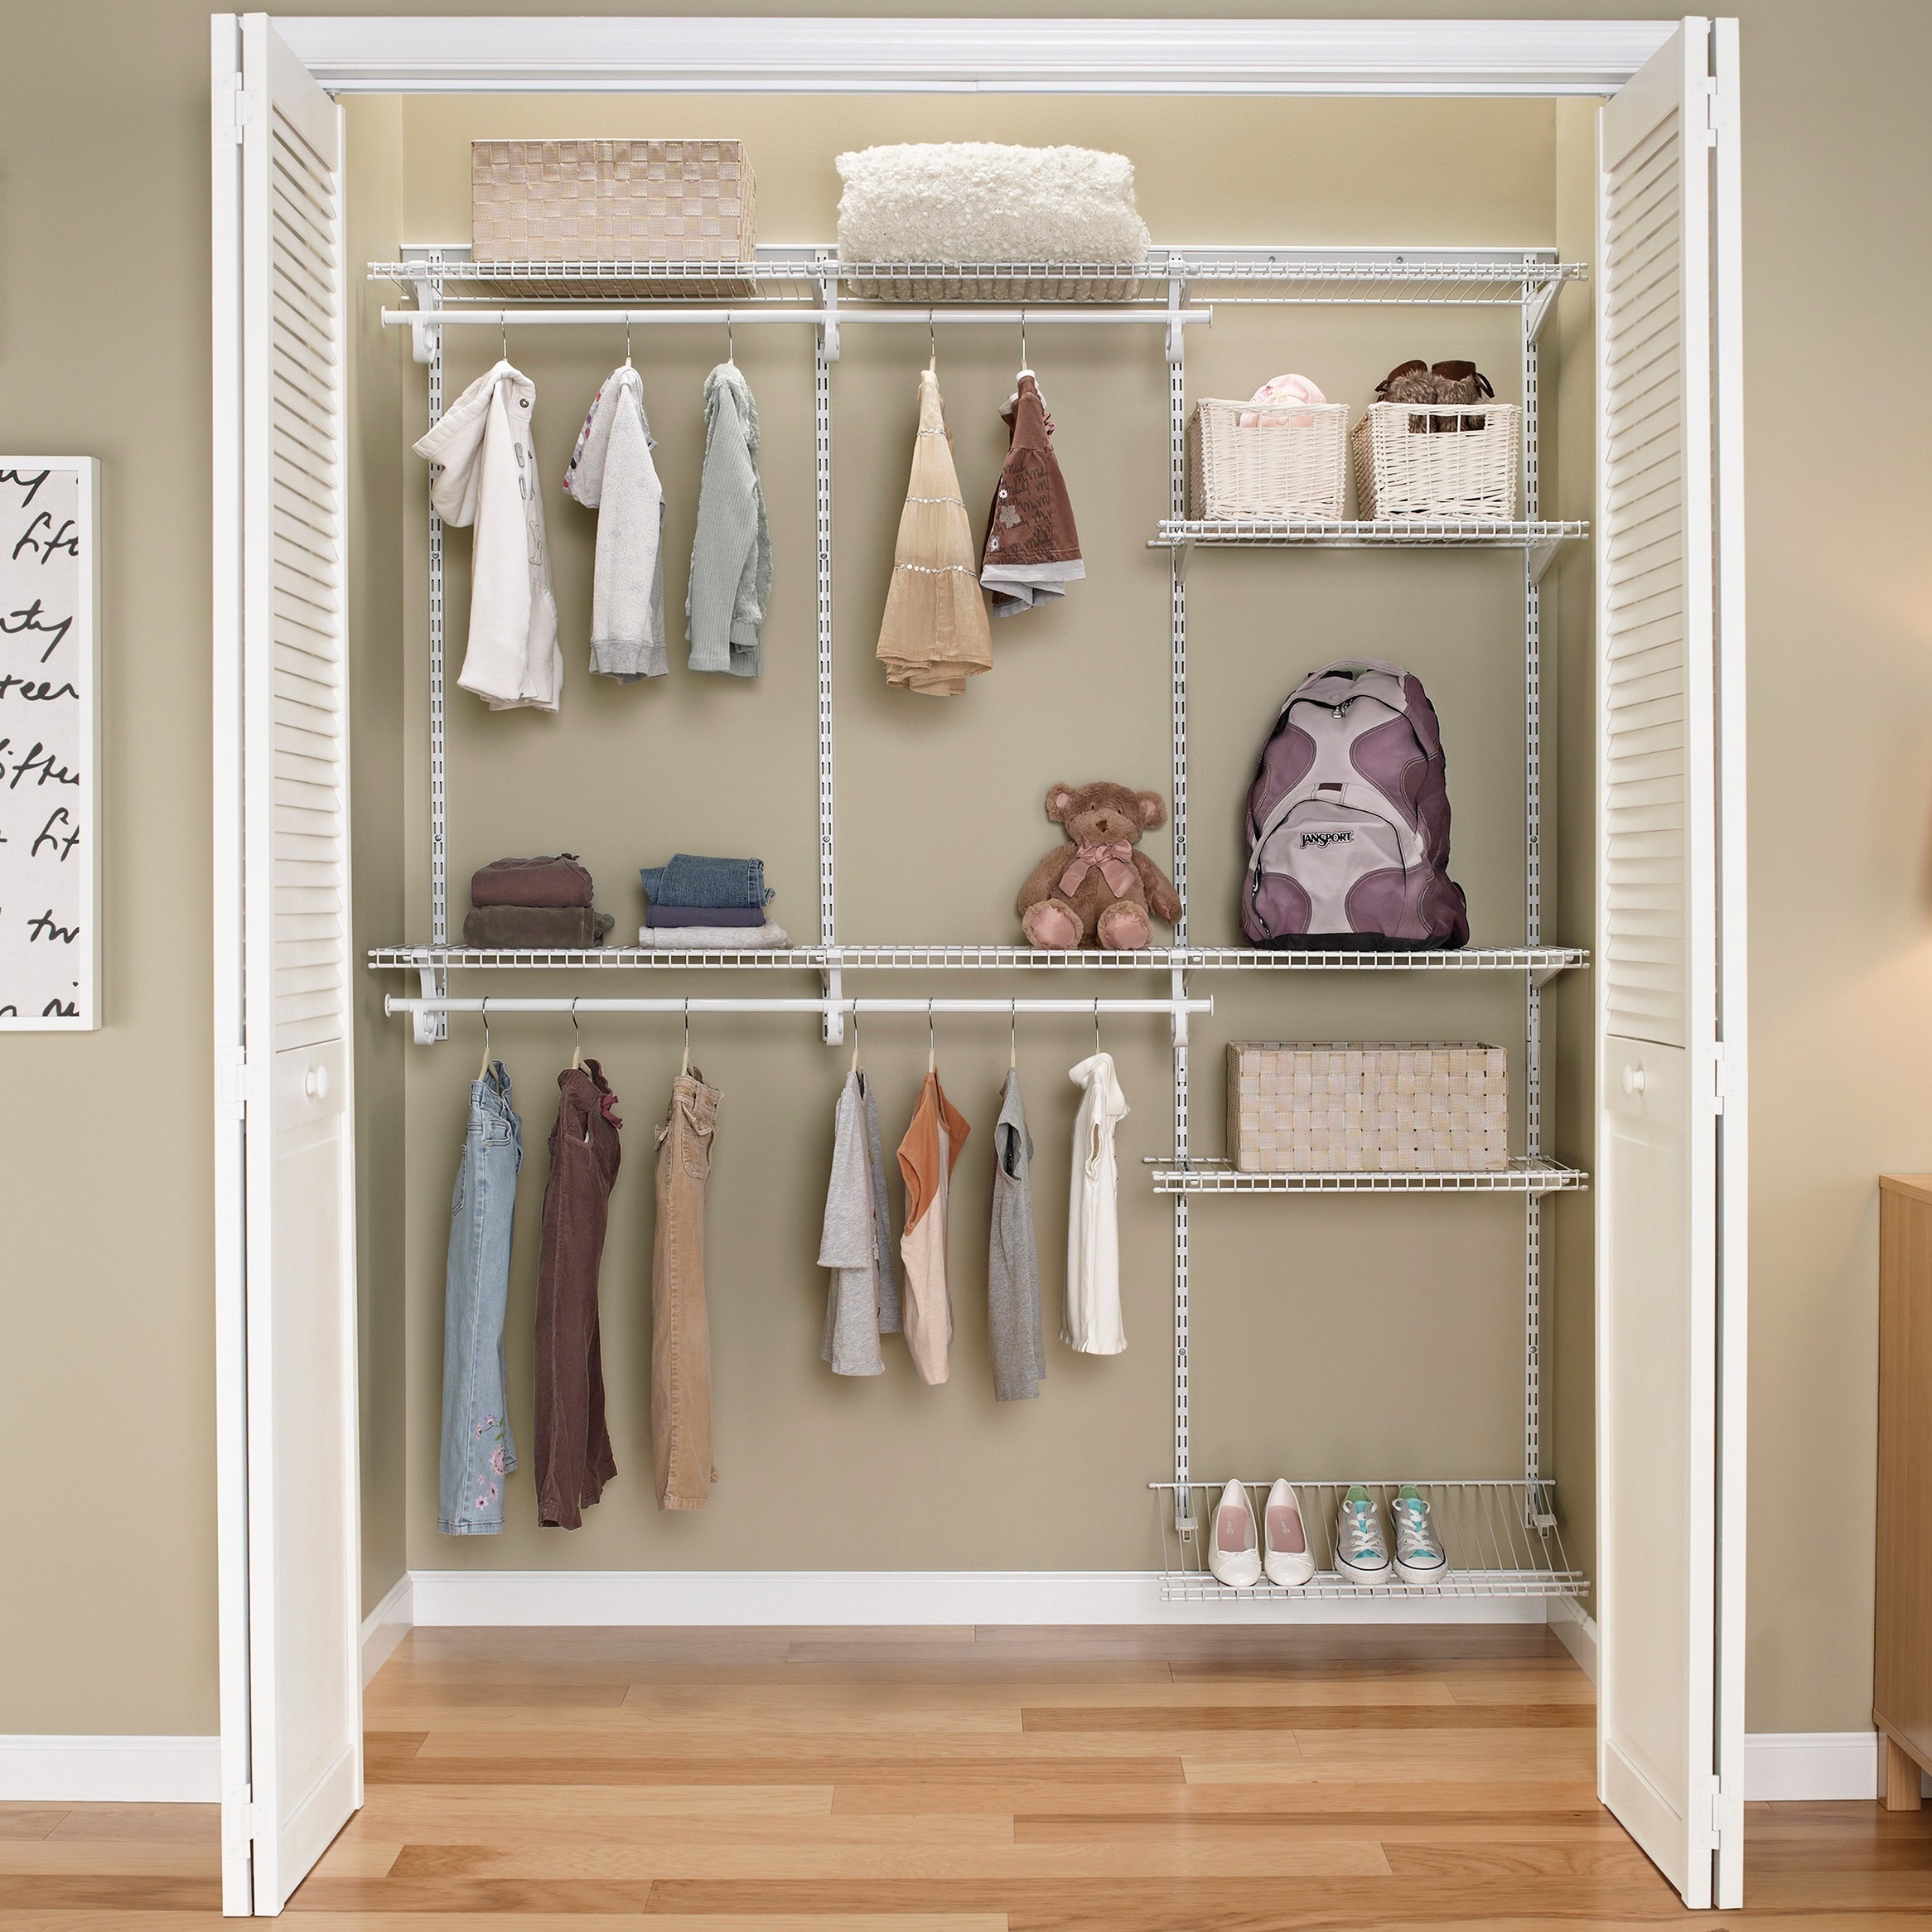 Exceptional Shop ClosetMaid ShelfTrack 5ft To 8ft Closet Organizer Kit, White   Free  Shipping Today   Overstock.com   10581832